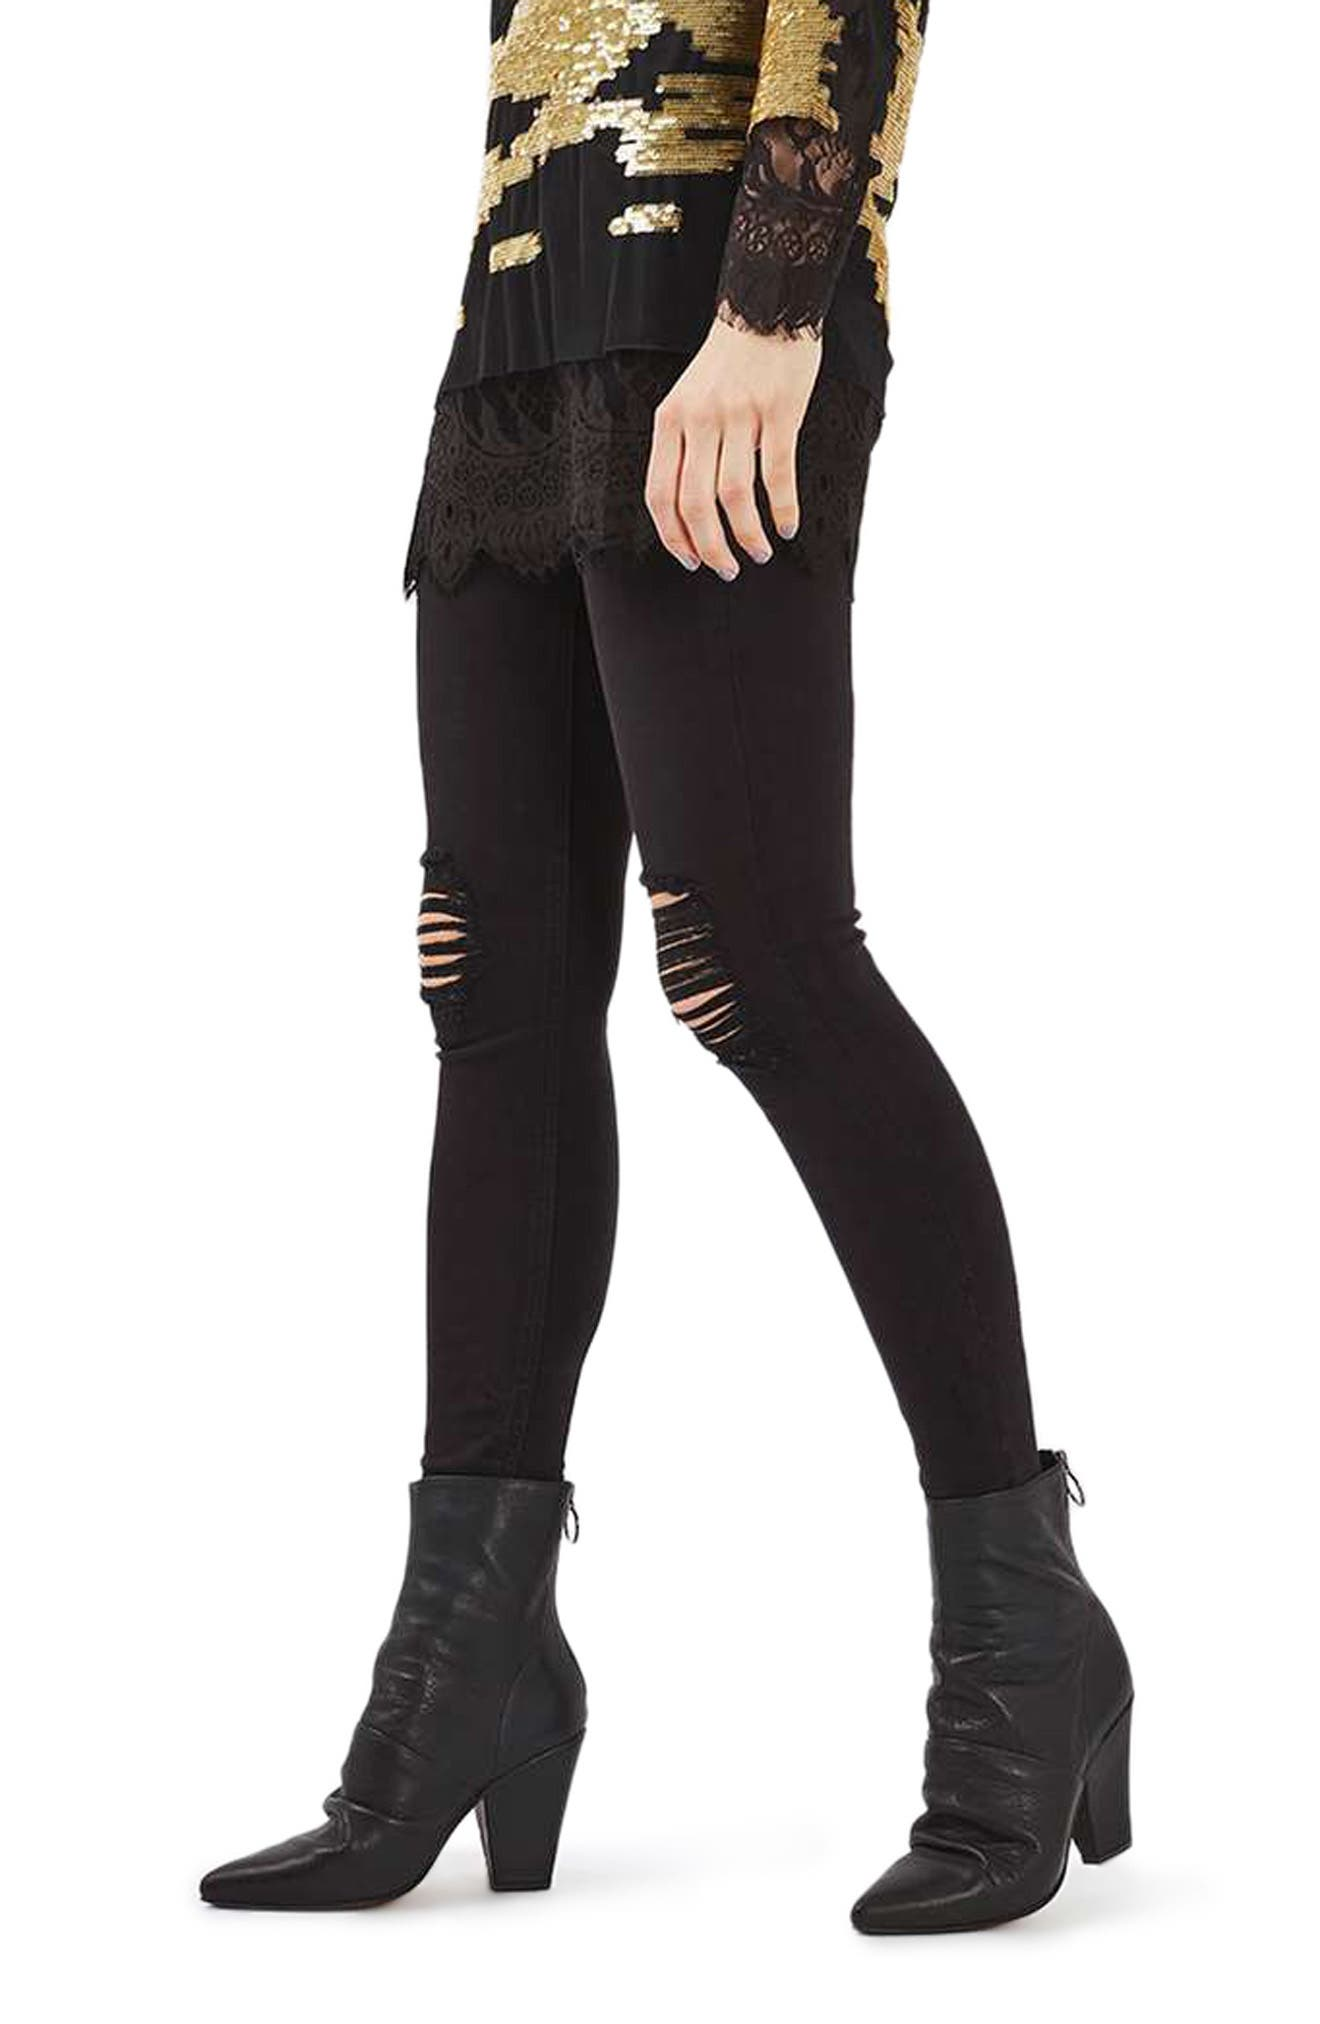 TOPSHOP, Ripped High Waist Ankle Skinny Jeans, Alternate thumbnail 5, color, 001